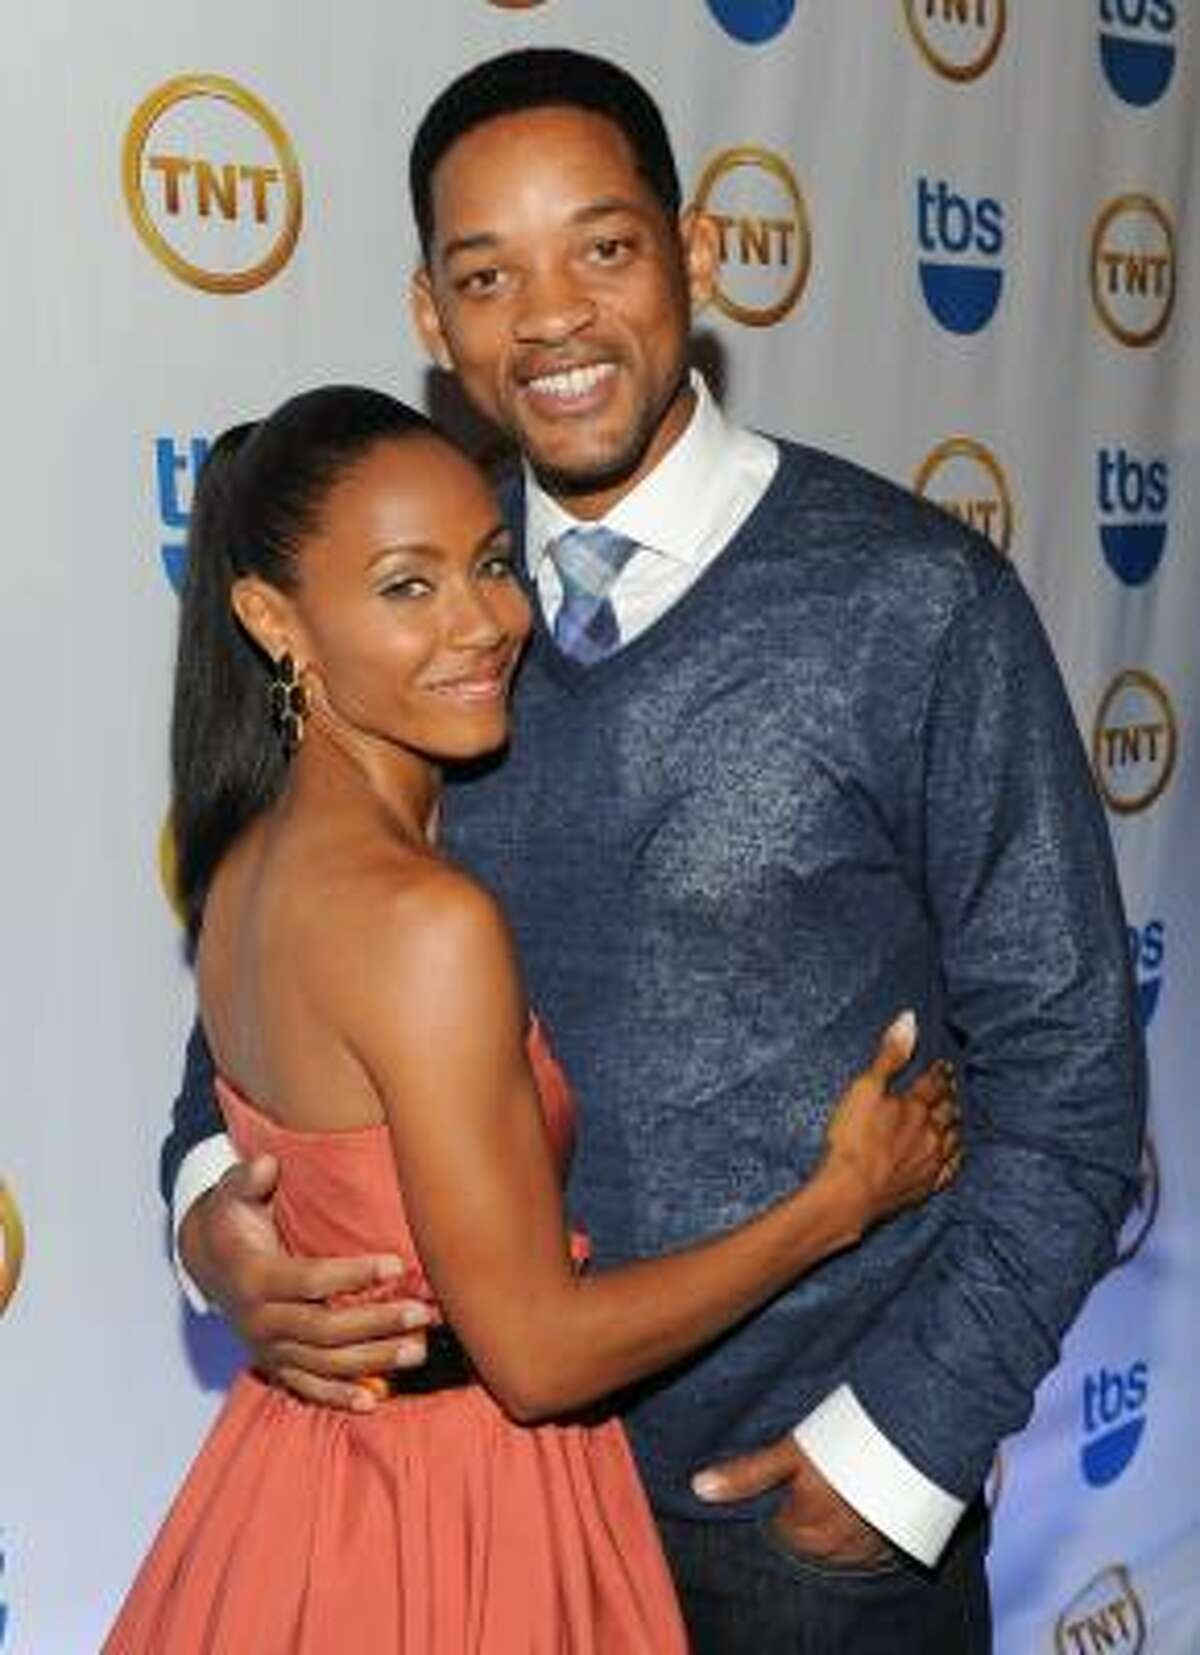 Will Smith and Jada Pinkett-Smith have been very open about their marriage